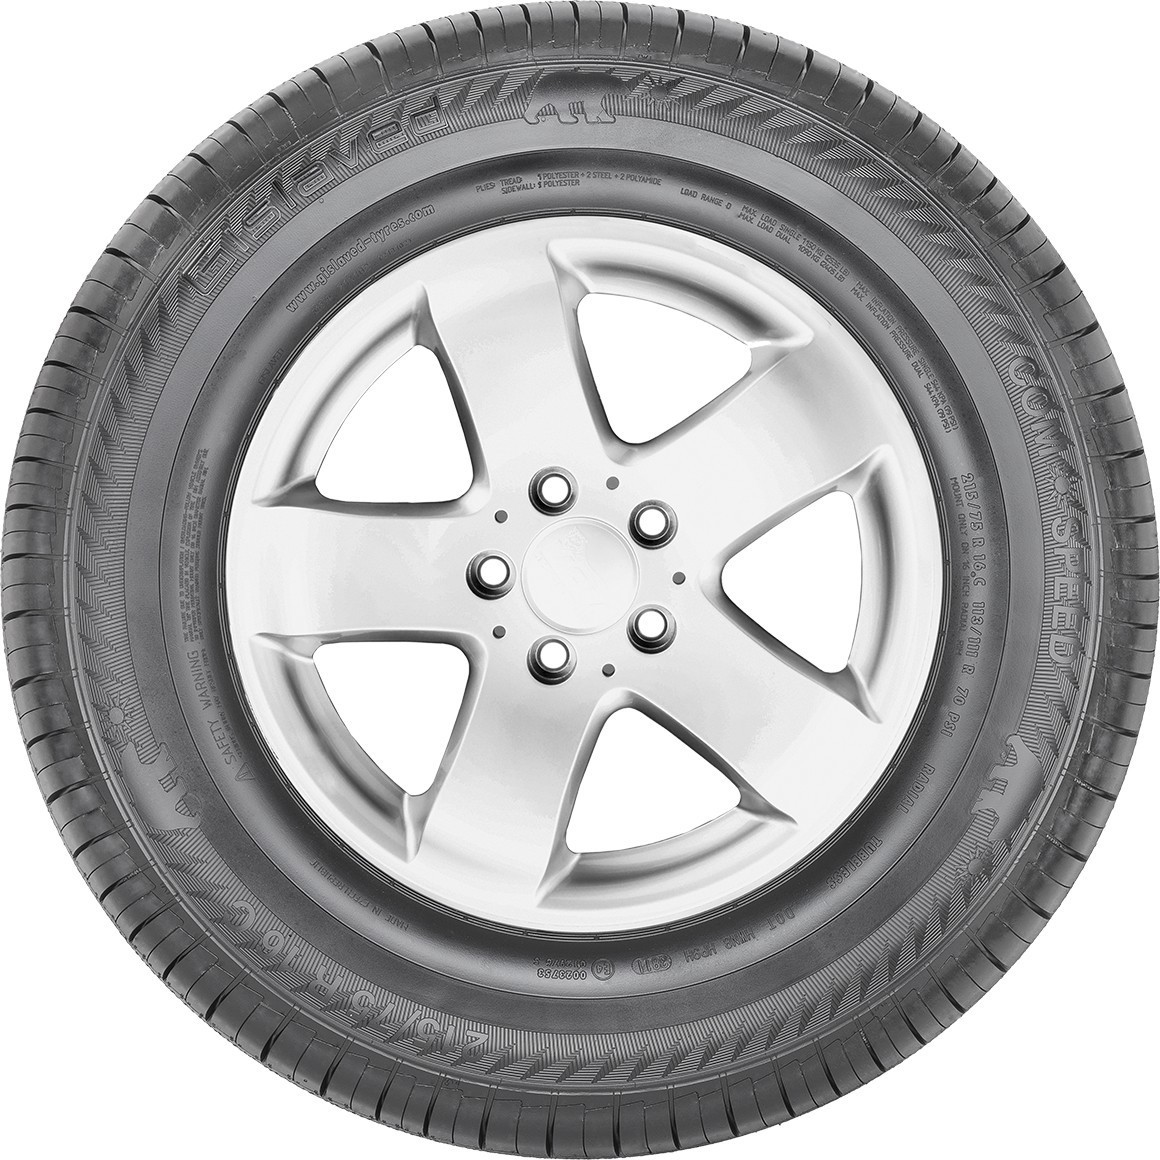 Gislaved Com*Speed 215/70 R15C 109R